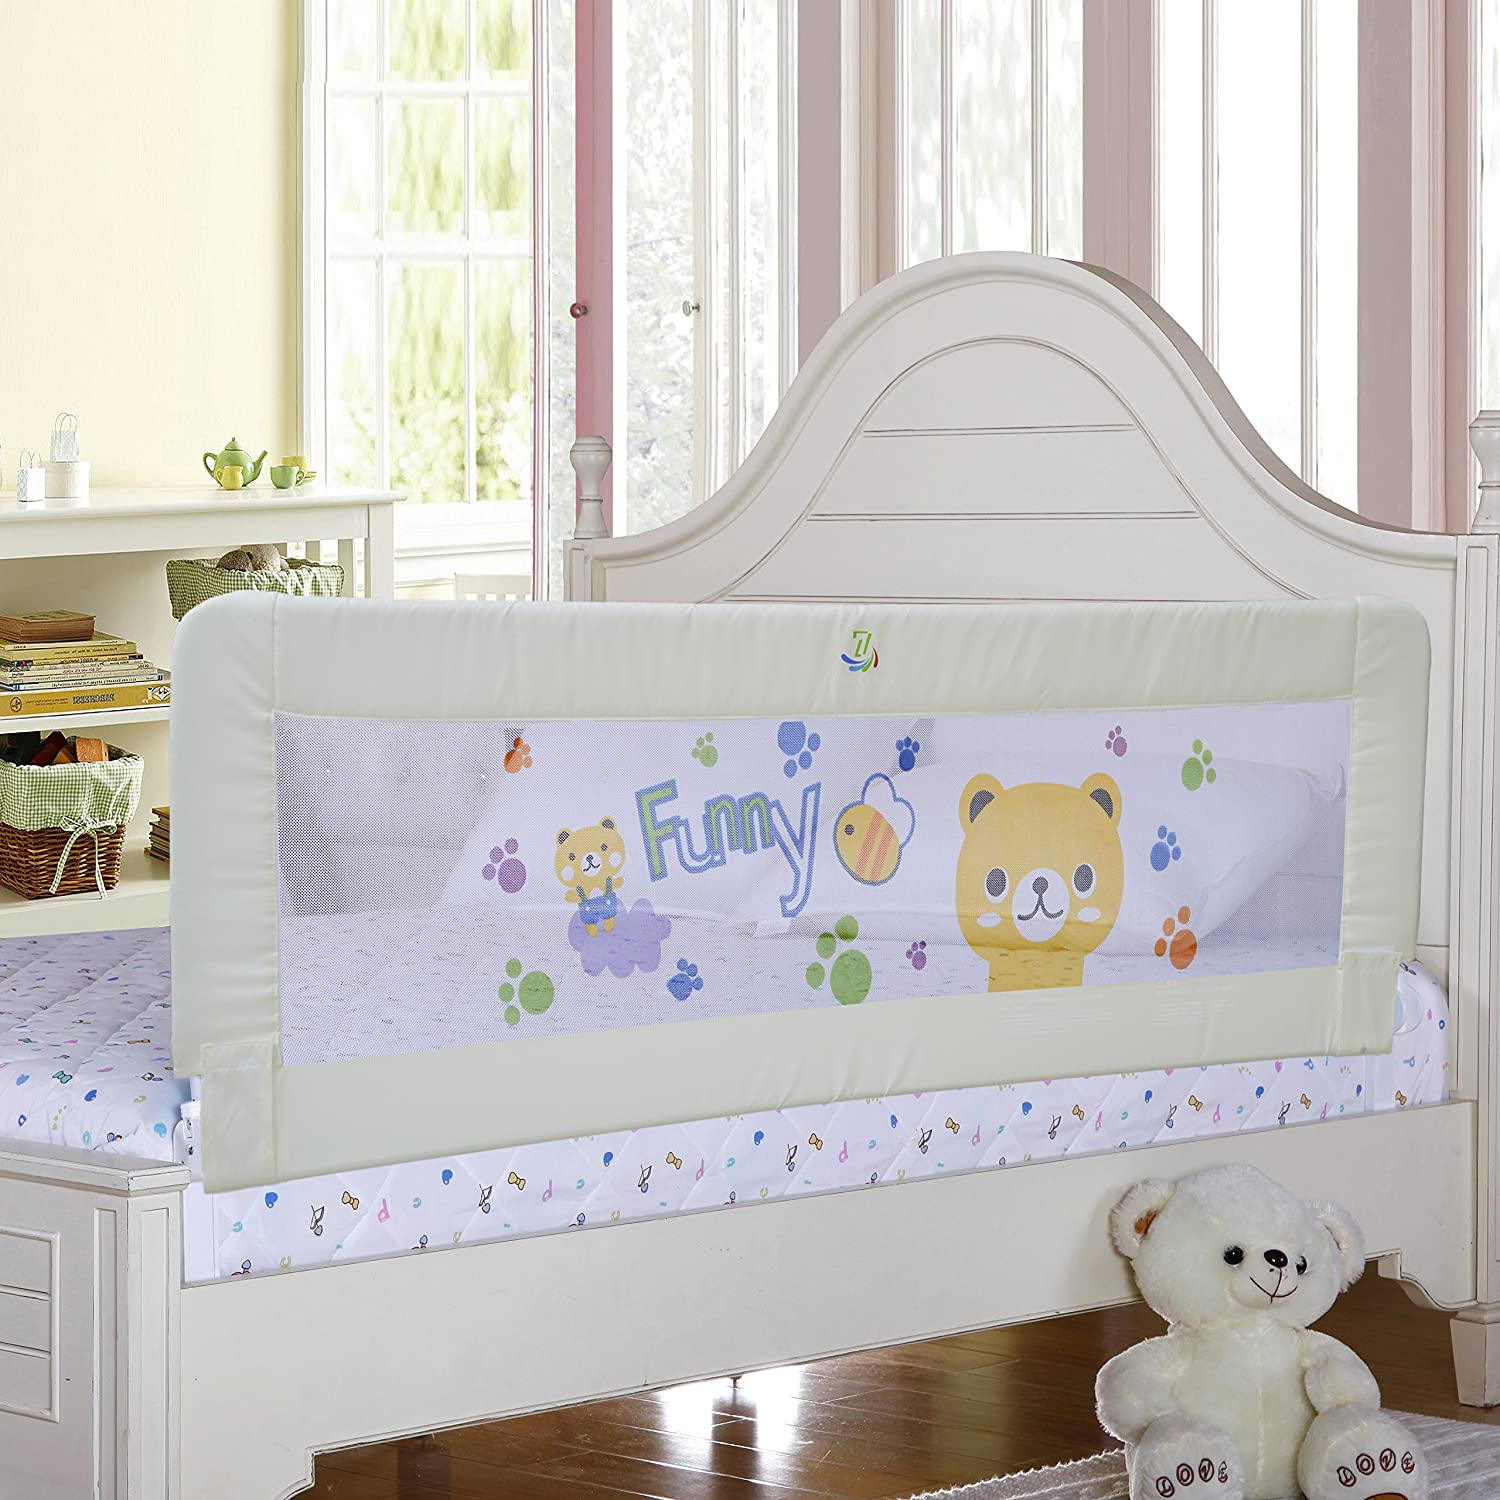 Baby Bed Rail Children Extra Long Bed Guard Toddler Safety Fold Down Bedrail Potable Stop Falling White Color (70 inches) YAVOCOS